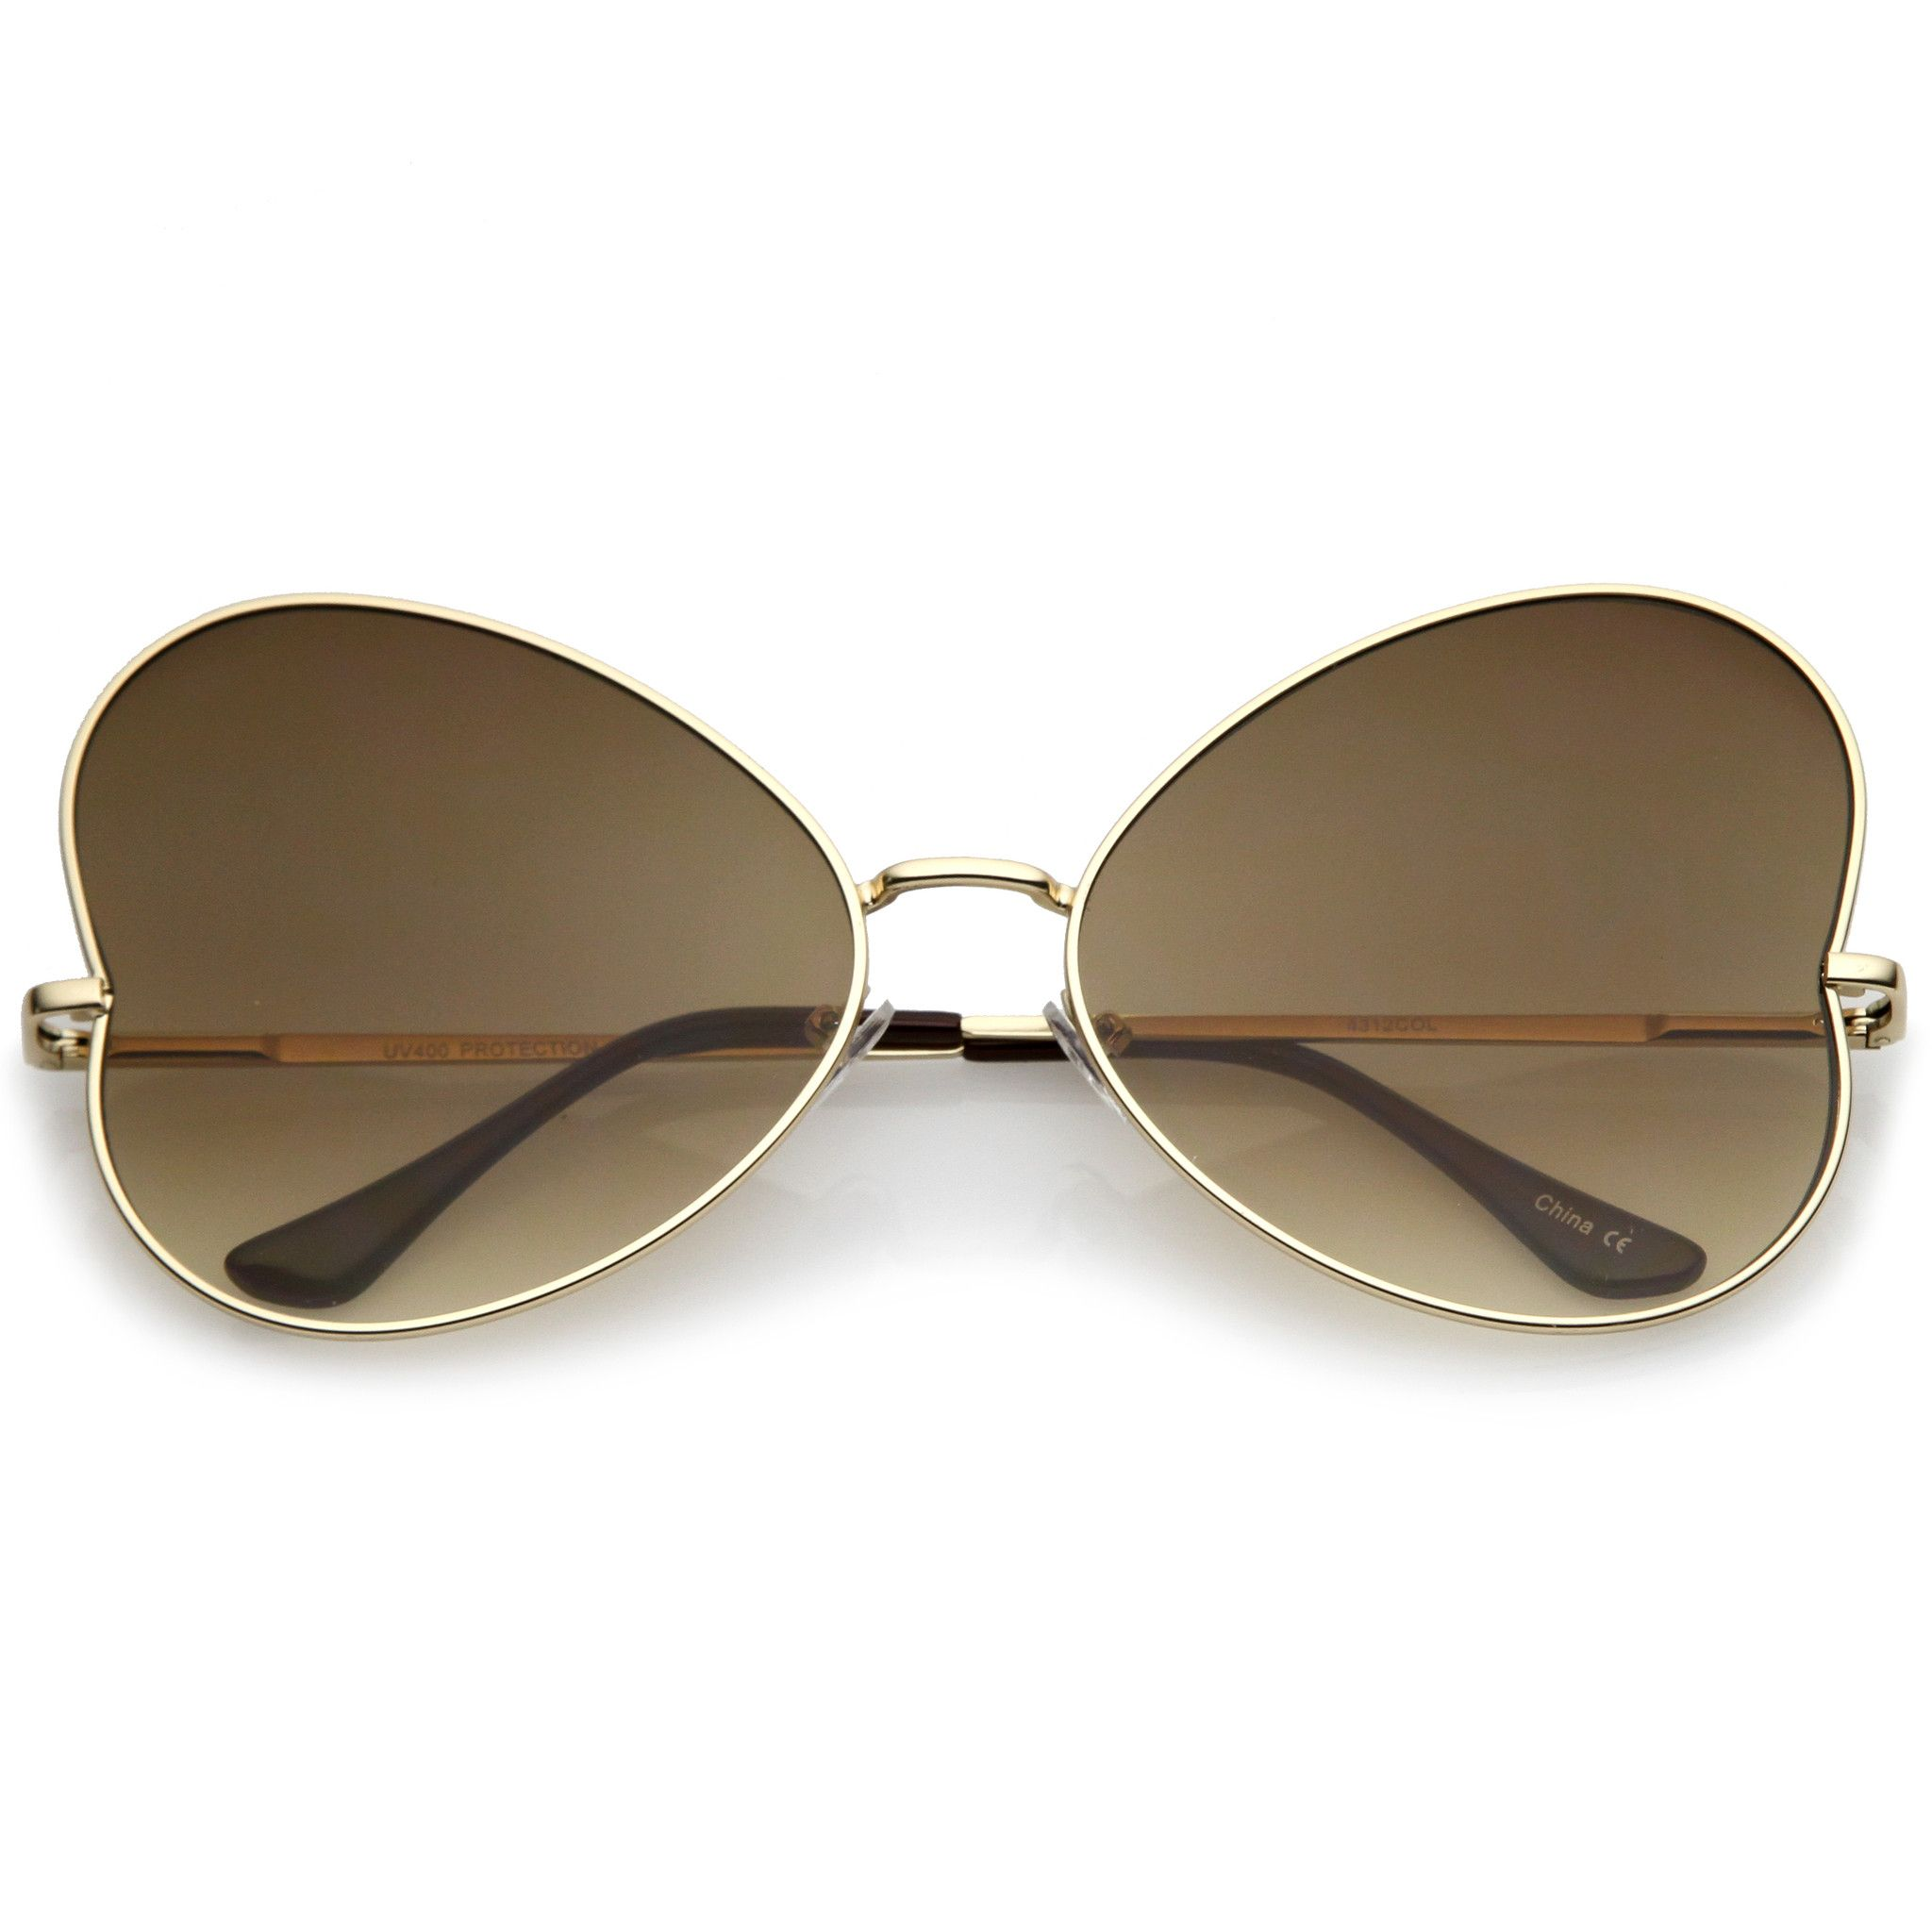 37f0524be19 Festival Indie Oversize Butterfly Gradient Lens Sunglasses C124 Cool  Sunglasses